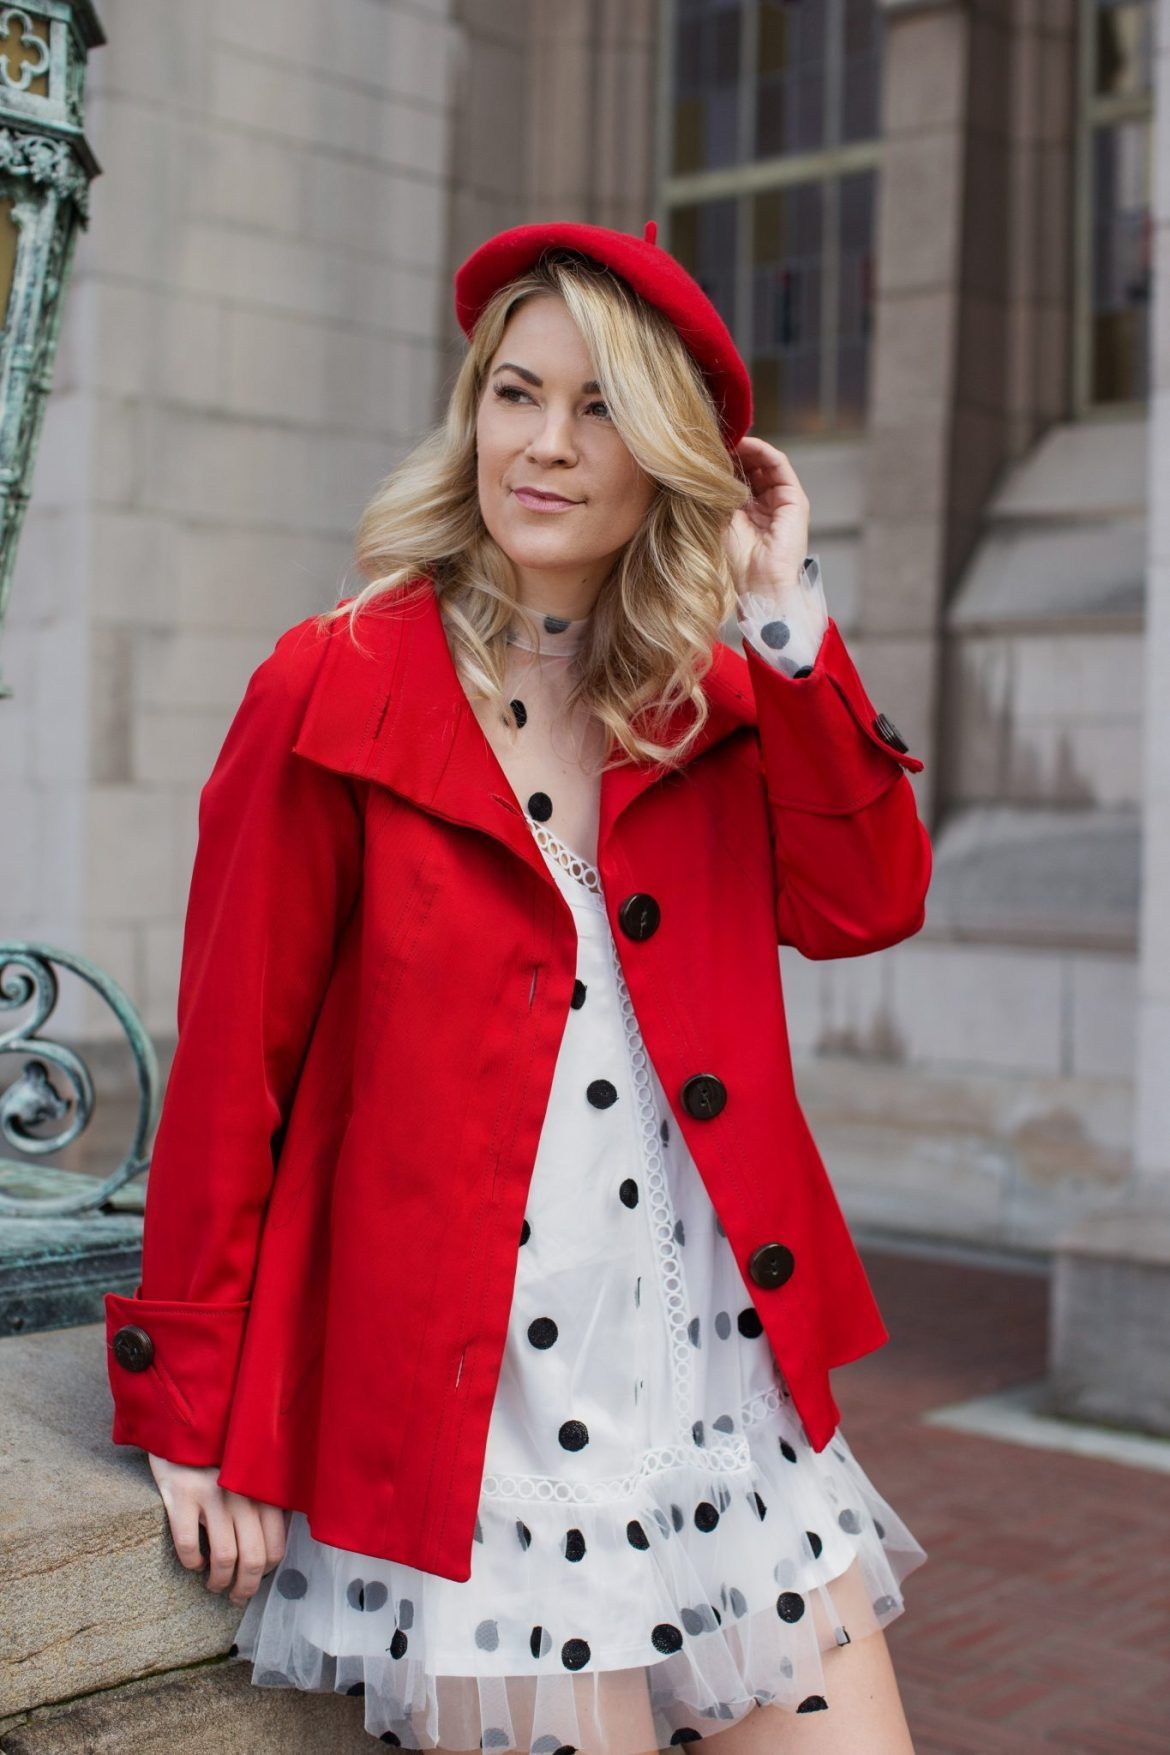 polka dot dress red beret